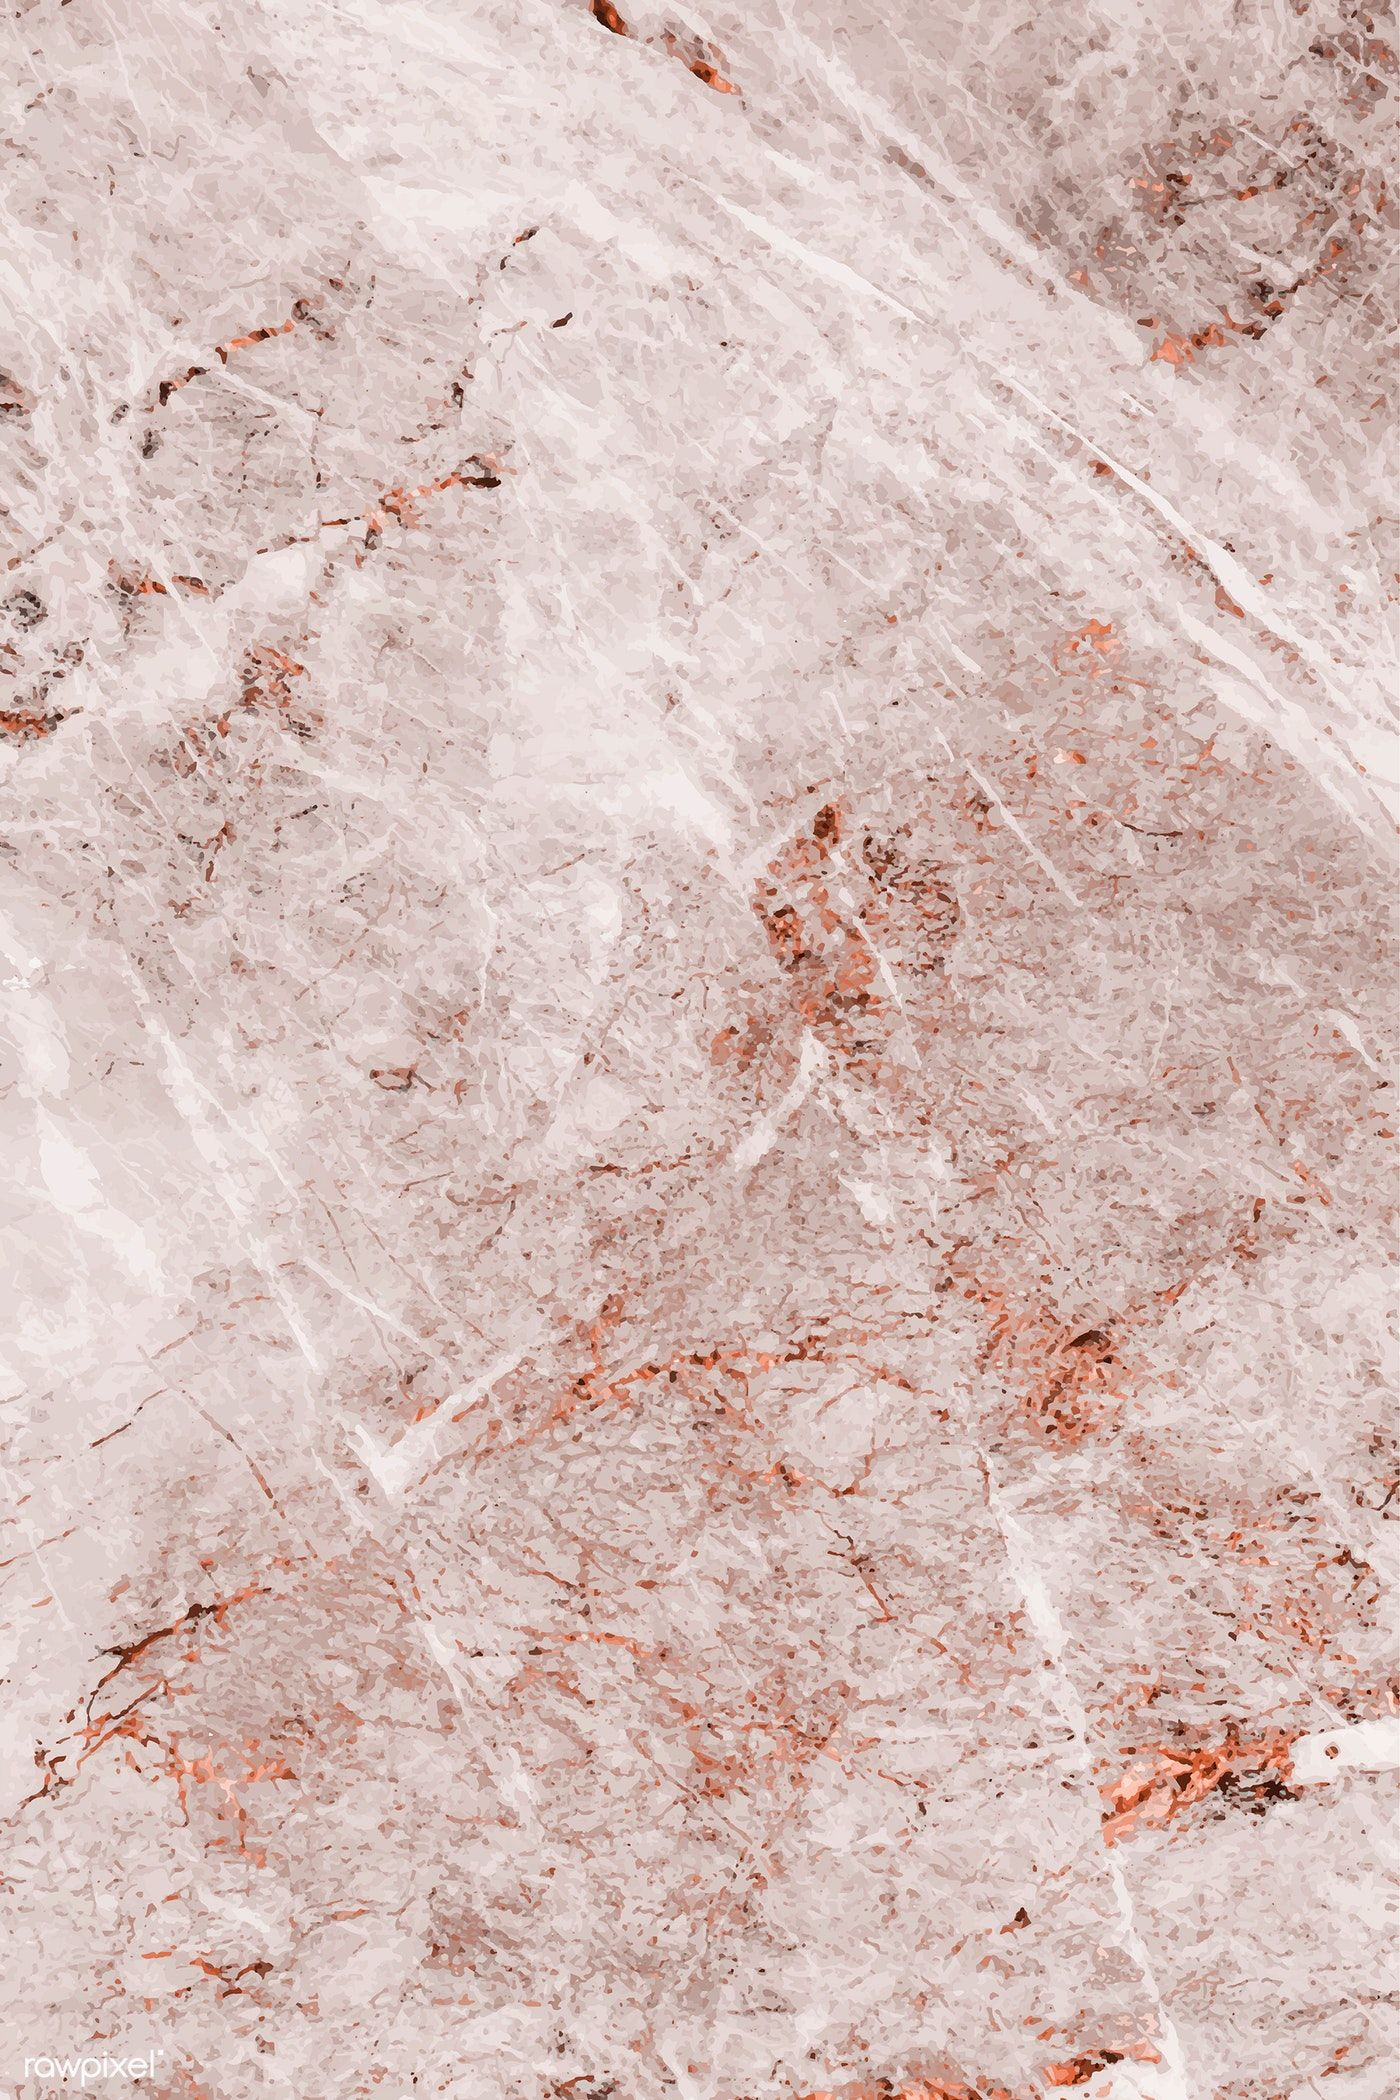 Download free vector of Pinkish red marble textured background 931753